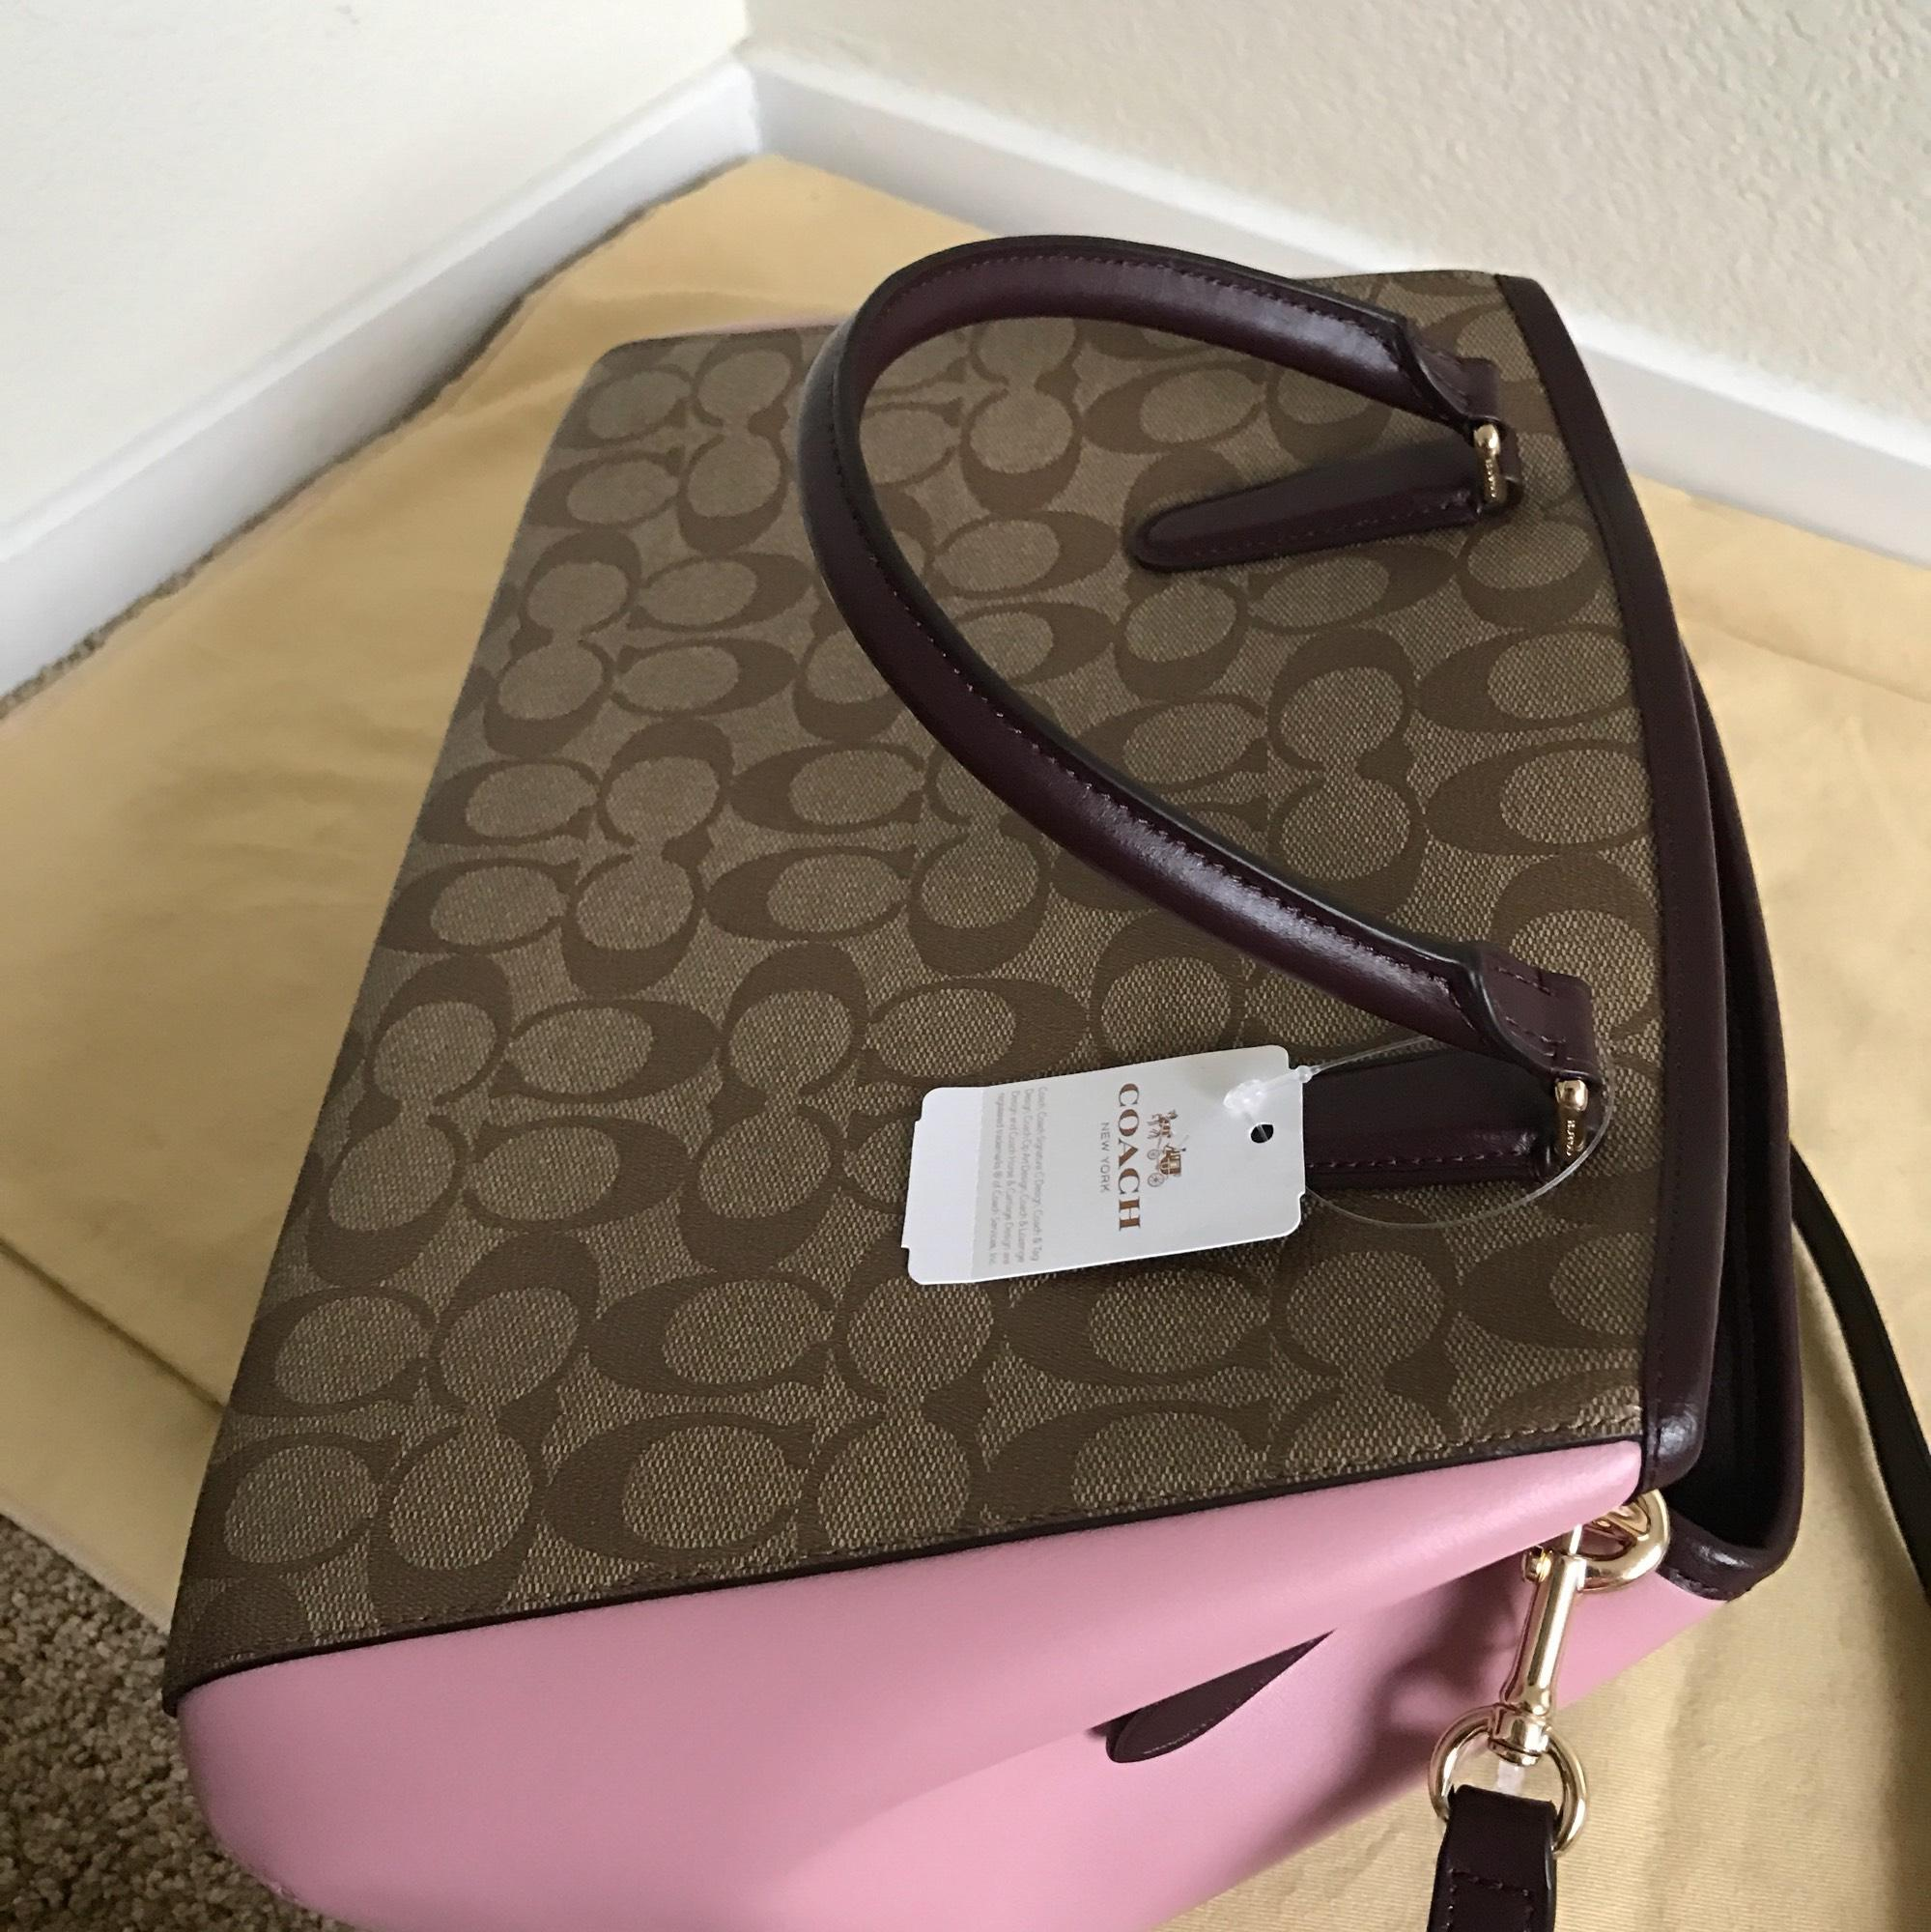 3db7eb20ab7a ... cheap coach margot small carryall in colorblock signature f57492  multicolor coated canvas satchel tradesy 5fd94 f738f